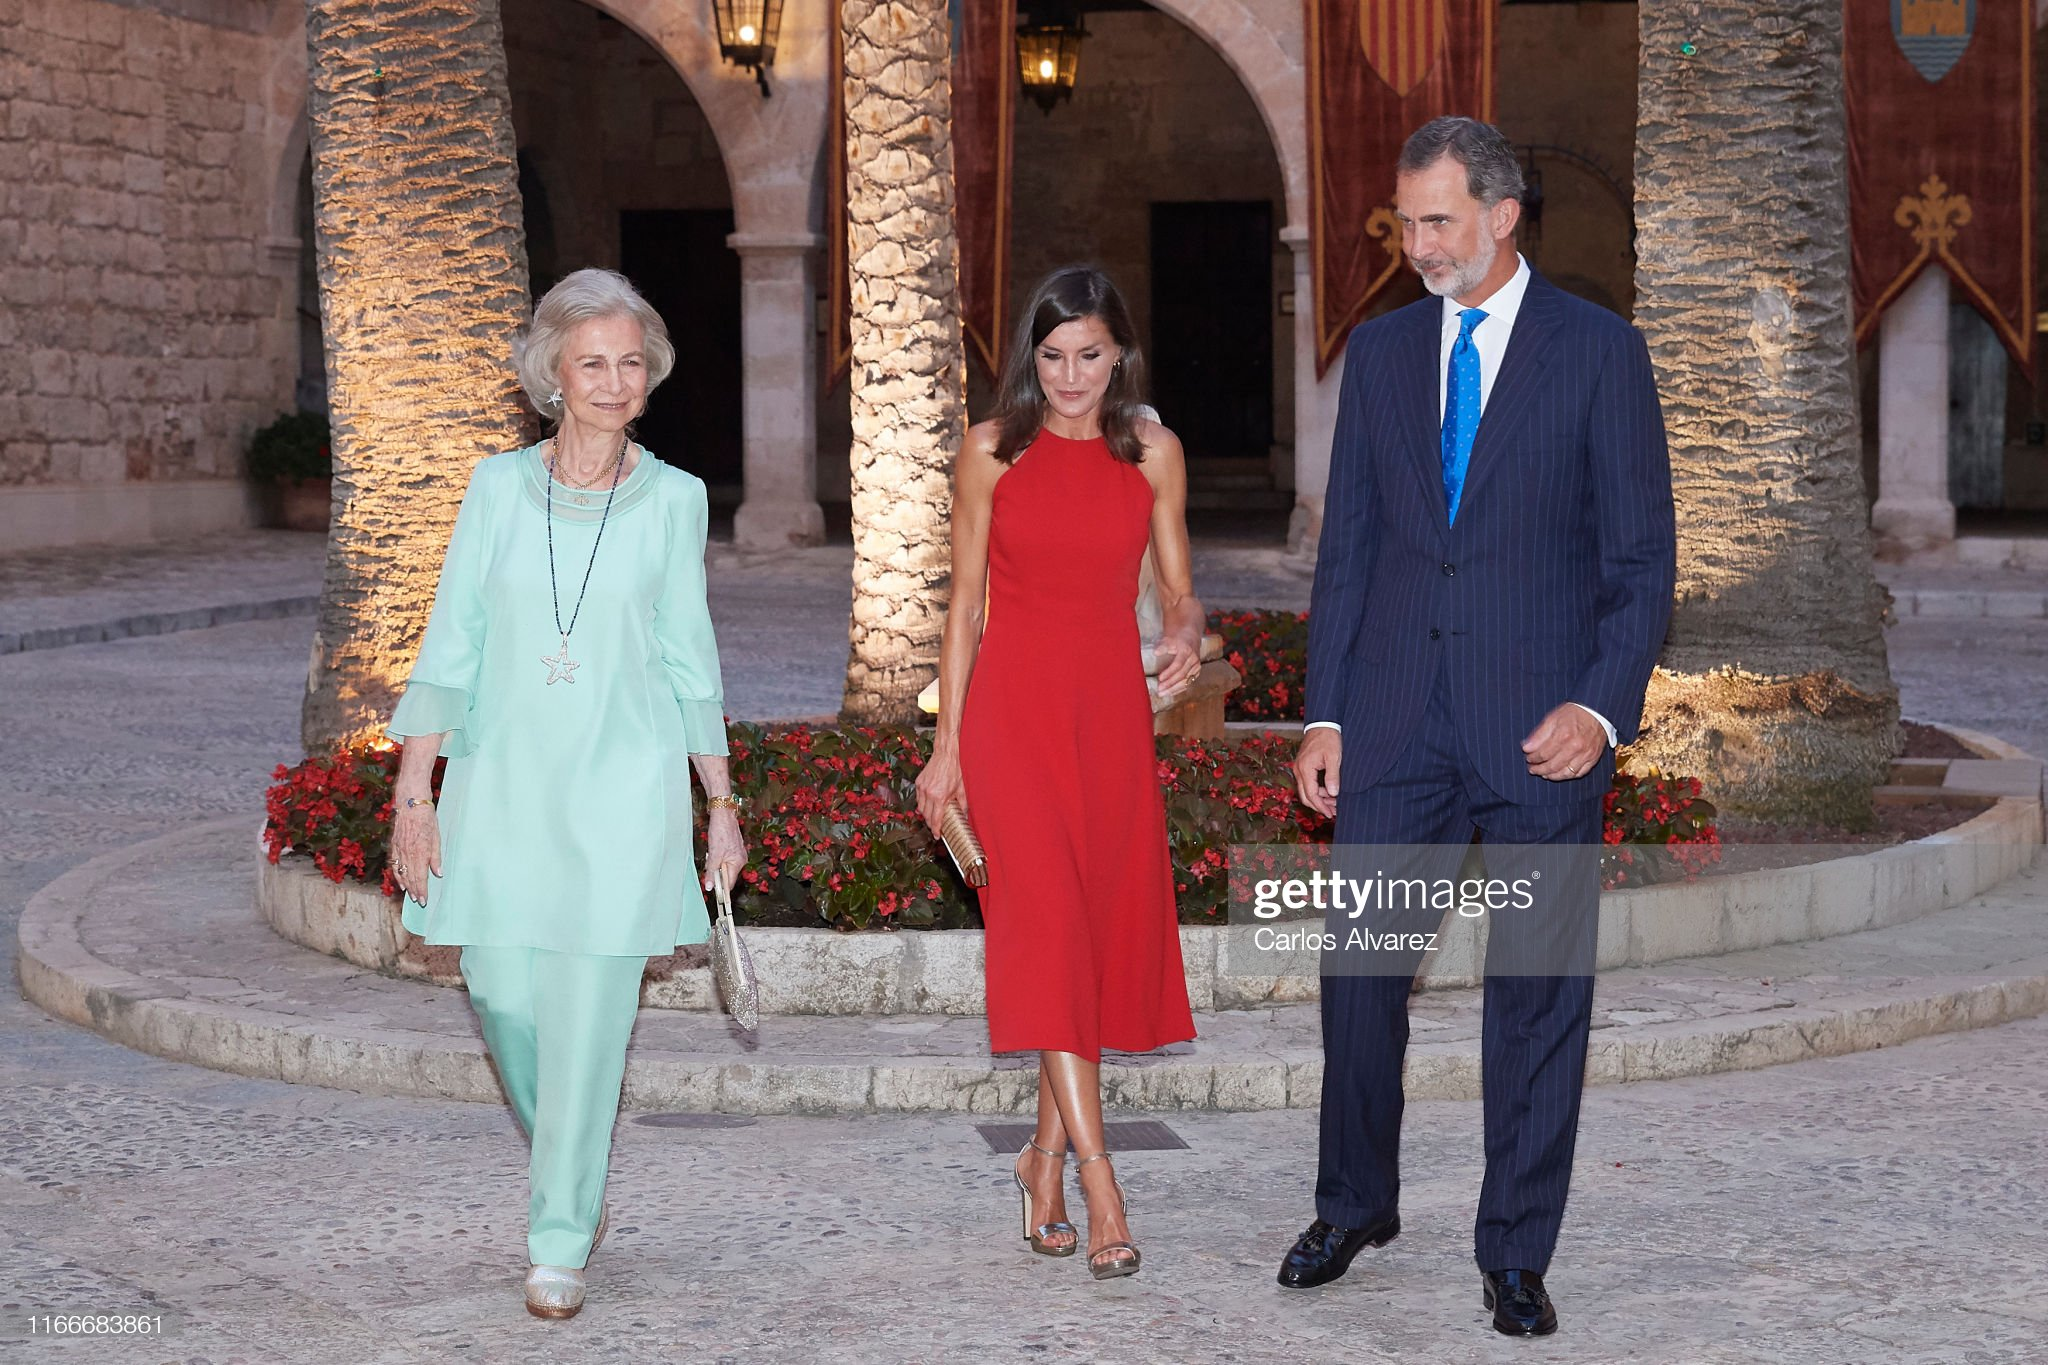 https://media.gettyimages.com/photos/king-felipe-vi-of-spain-queen-letizia-of-spain-and-queen-sofia-host-a-picture-id1166683861?s=2048x2048